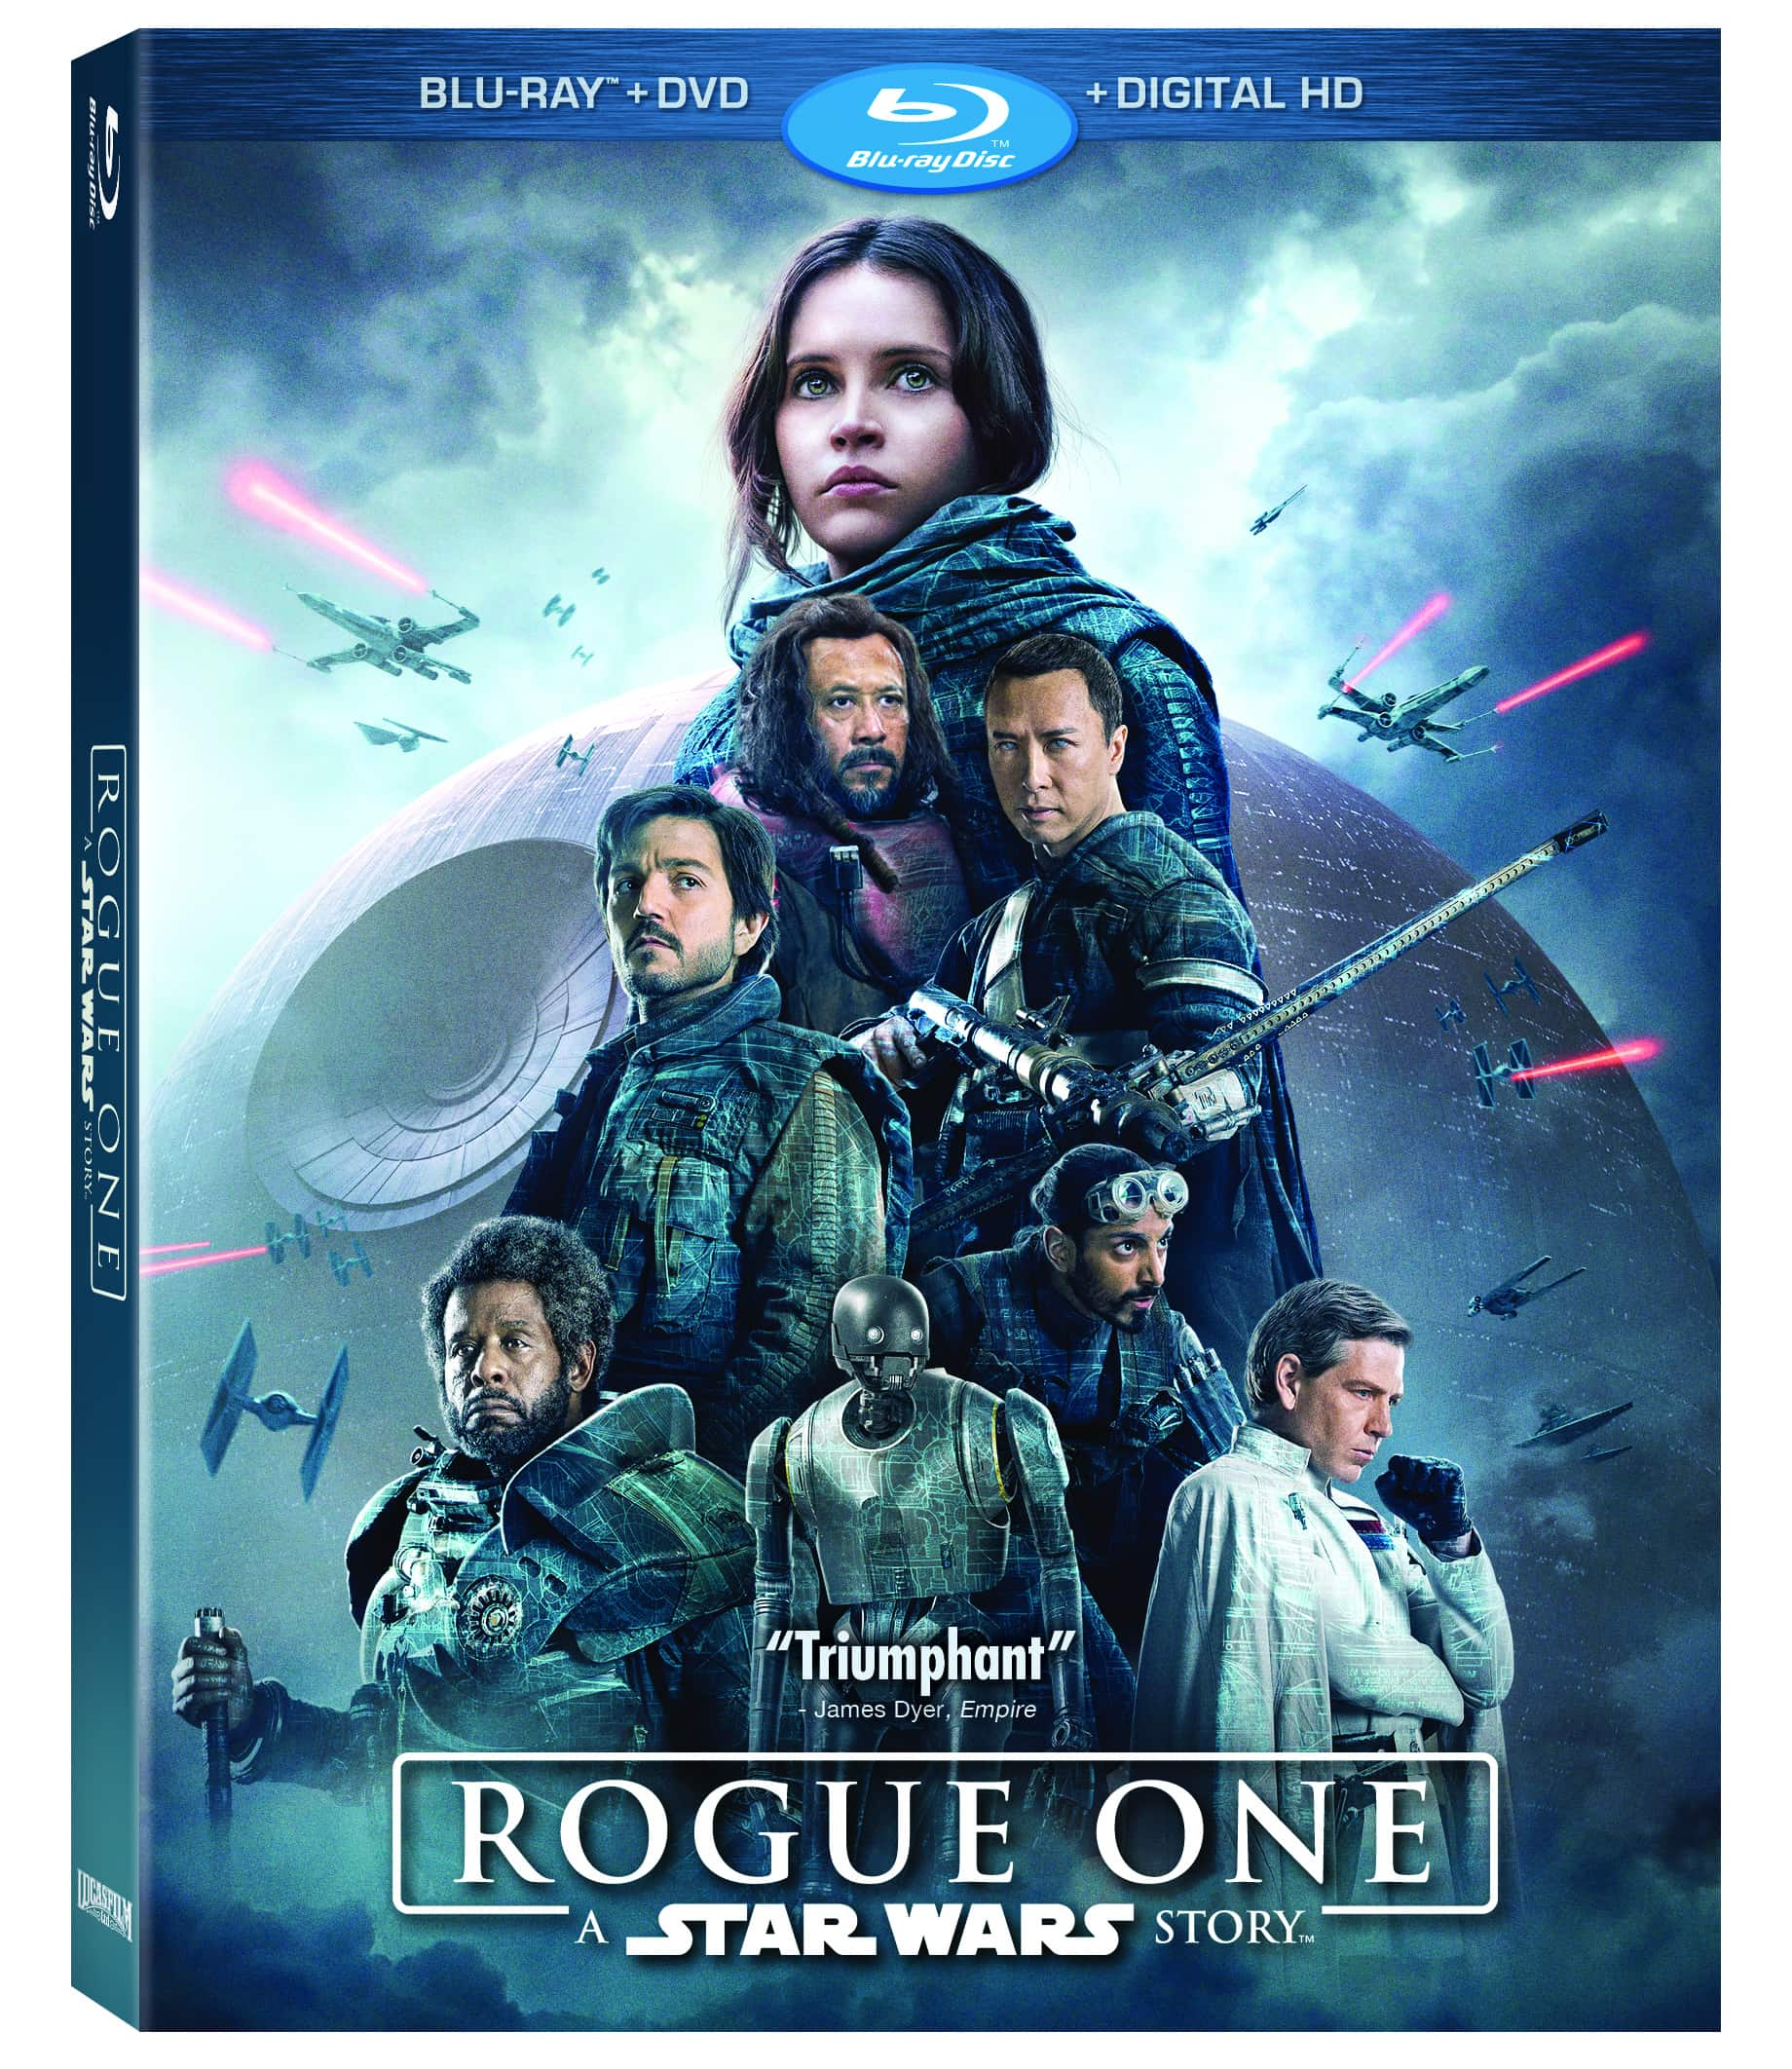 Rogue One on BluRay